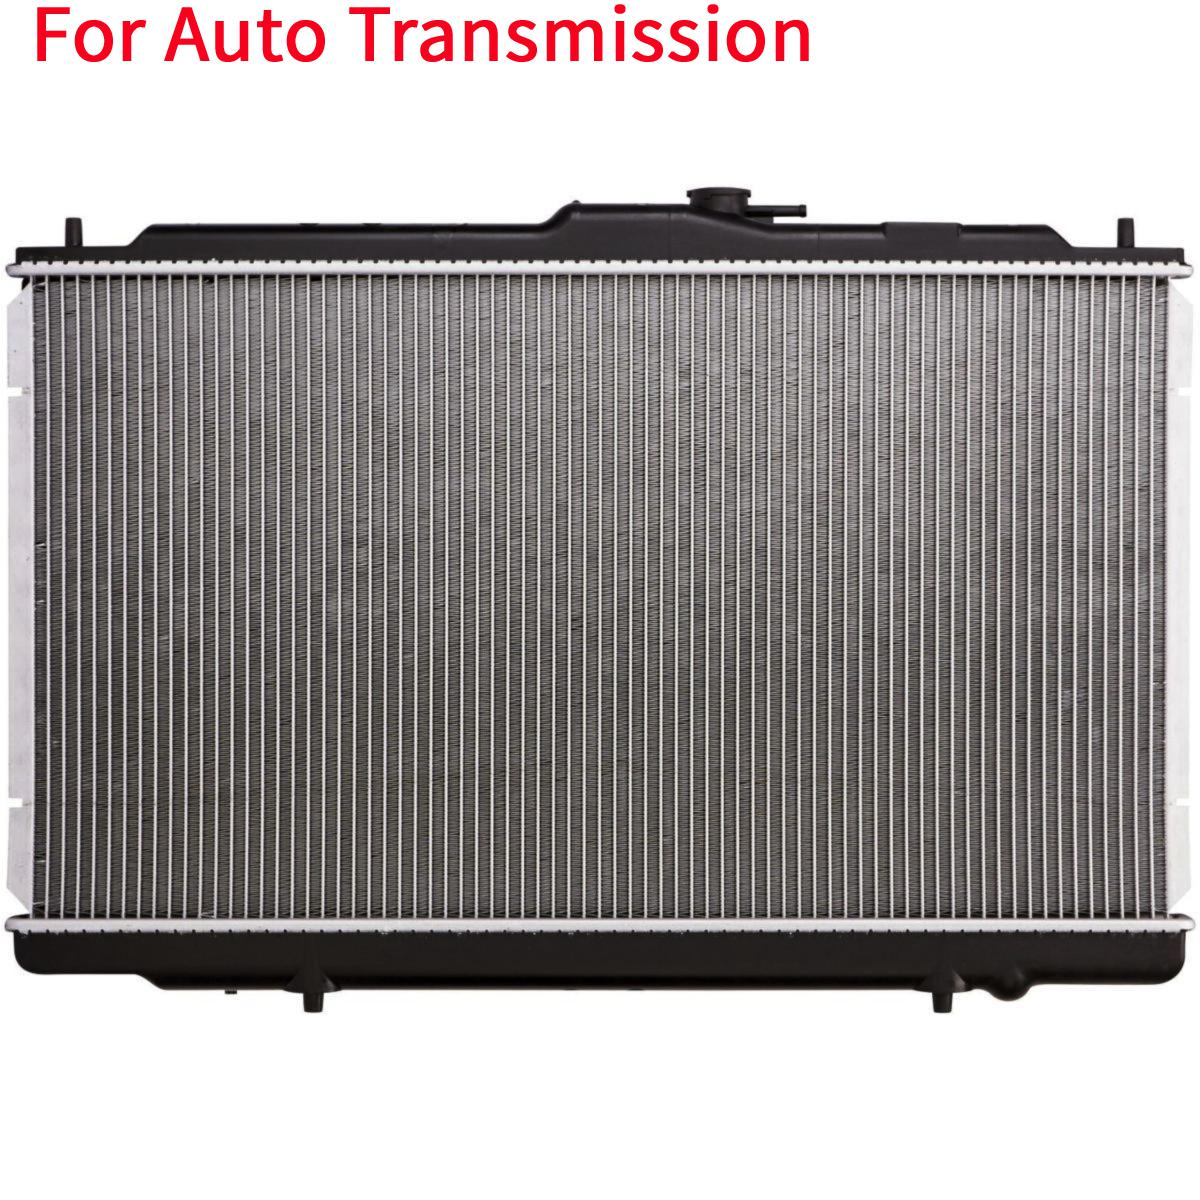 Auto Radiator For Acura 99-01 TL 3.2L Honda 98-02 Accord 3